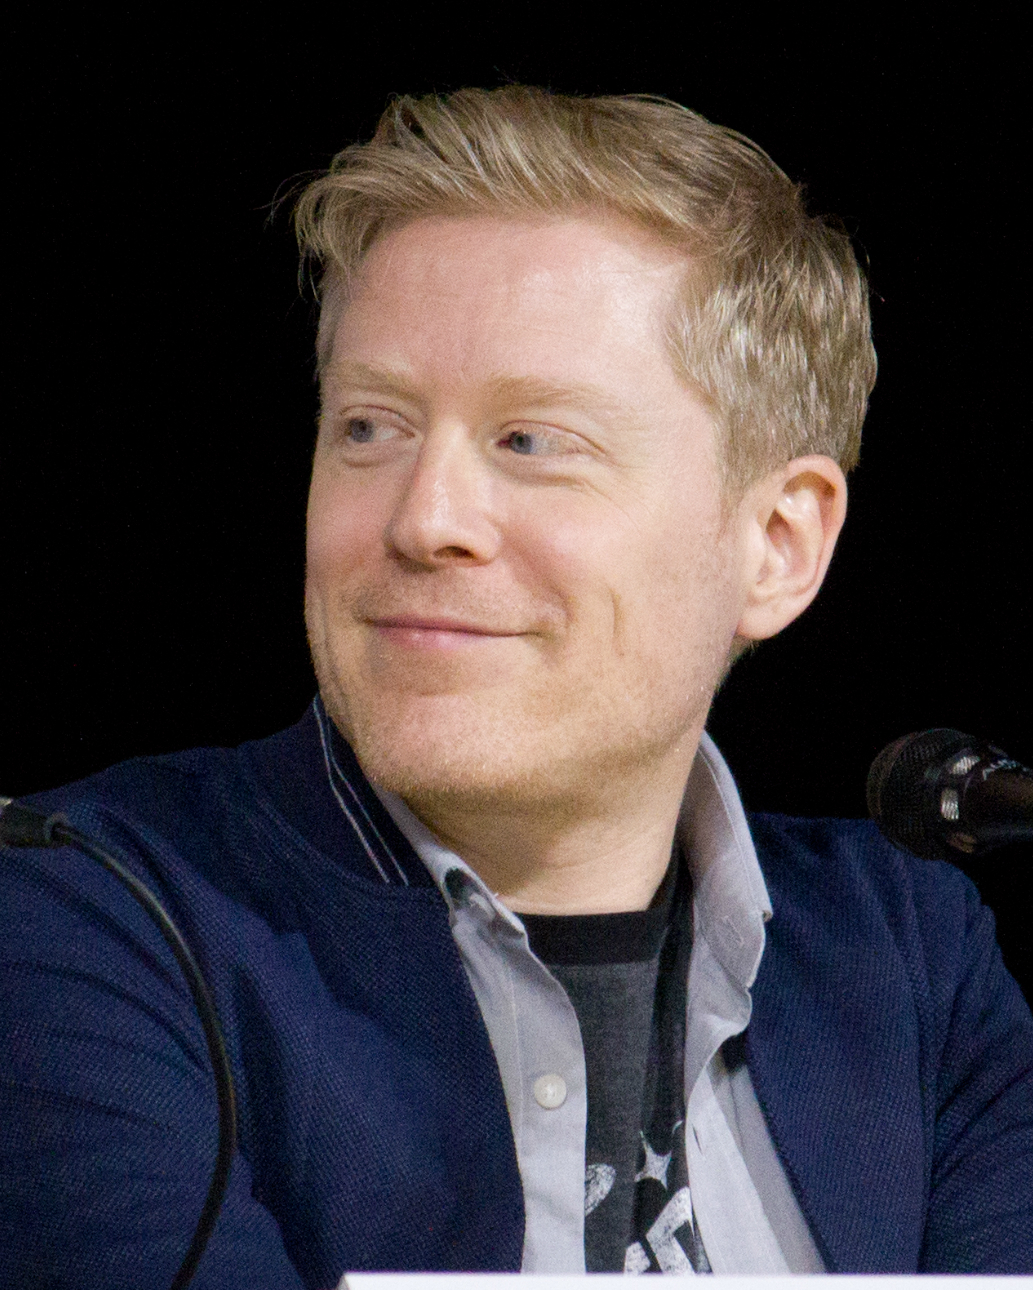 Anthony Rapp, the man whose tweets accusing Spacey of sexual assault over 30 years ago sparked a nationwide conversation about gay sexual assault